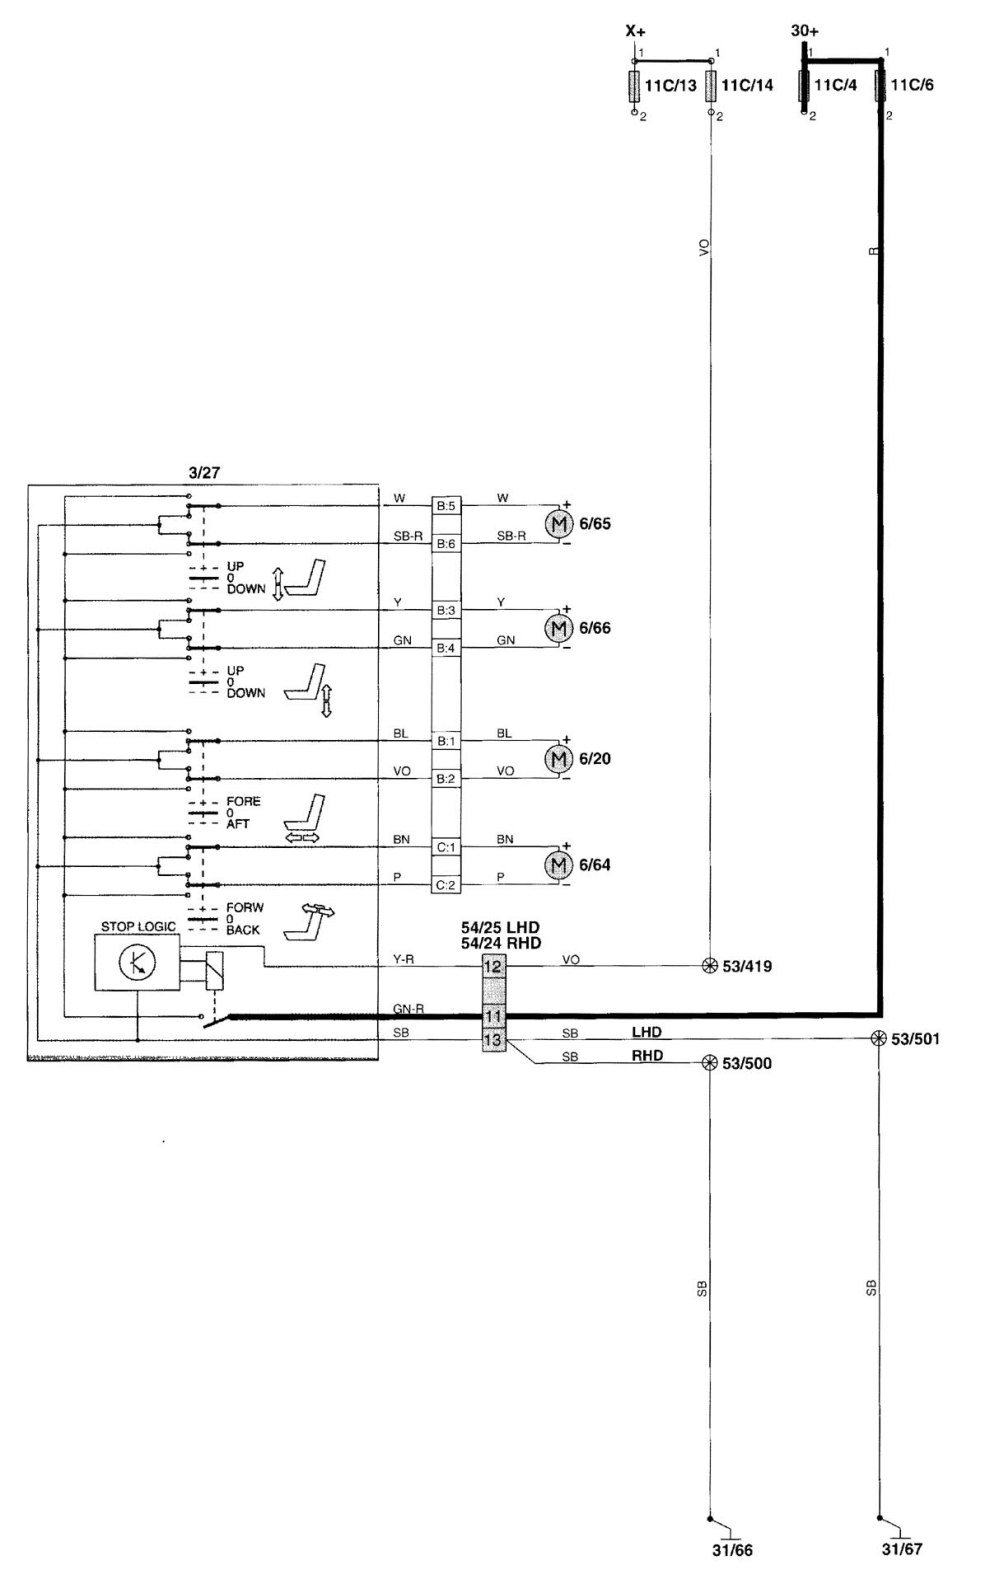 medium resolution of 2001 volvo v70 xc wiring diagram wiring diagrams bib 1999 volvo c70 wiring diagram volvo c70 wiring diagram